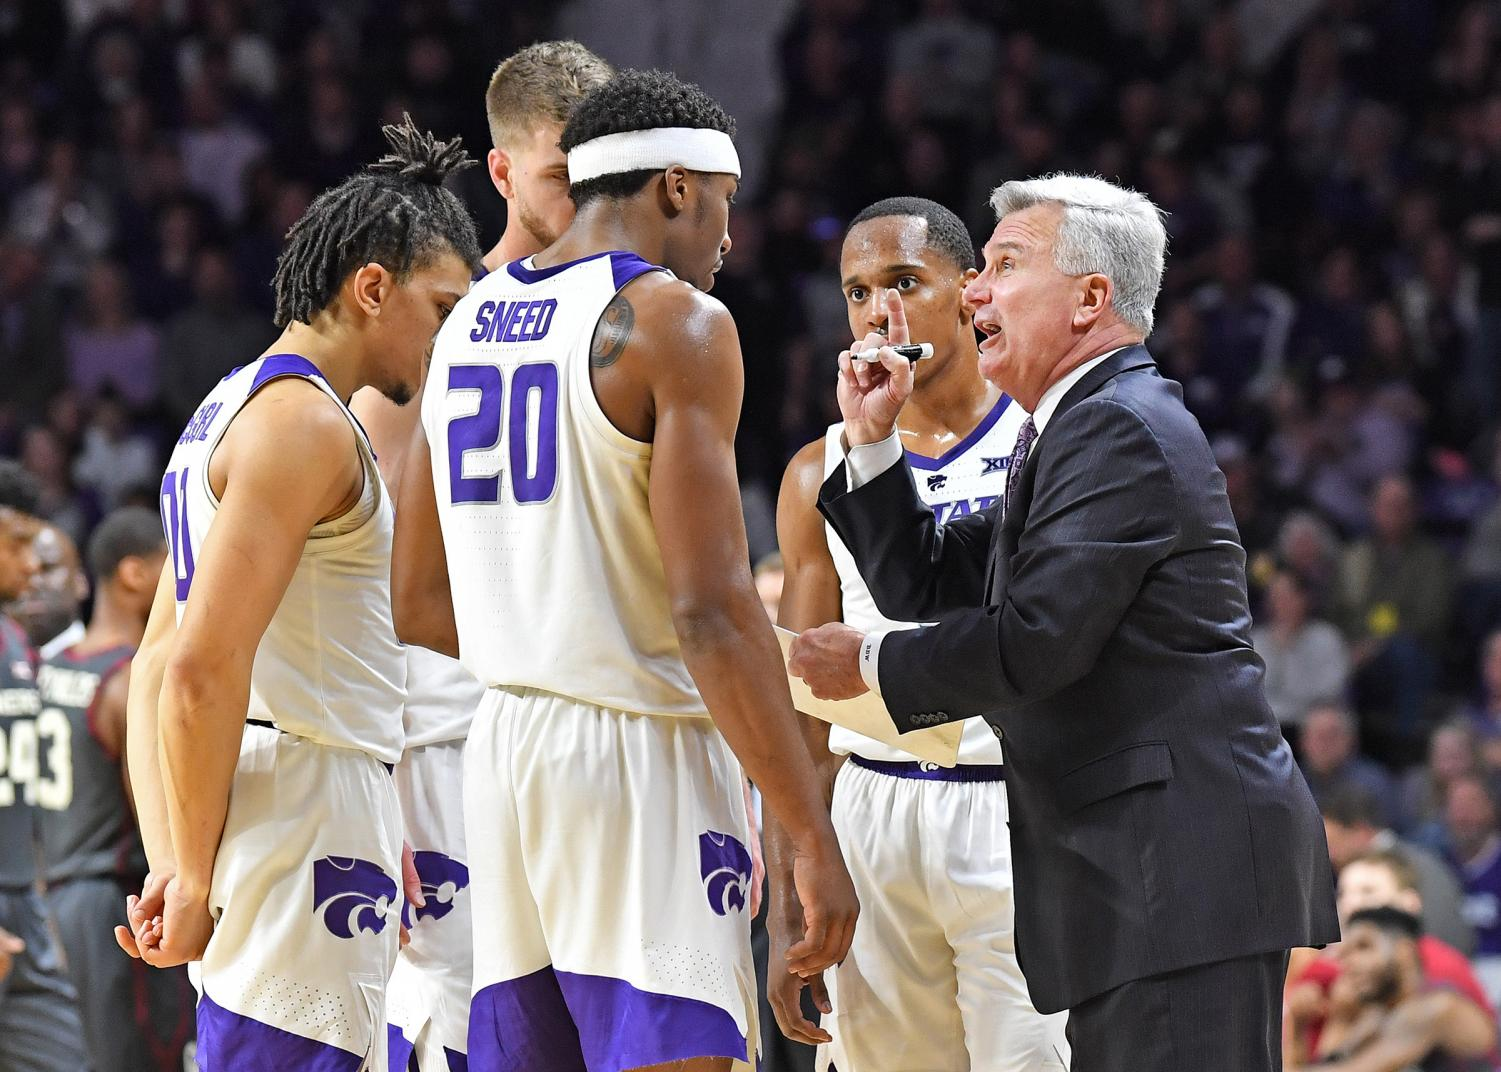 Bruce Weber has been the head coach at Kansas State since 2012. (Photo courtesy of Kansas State Athletics.)